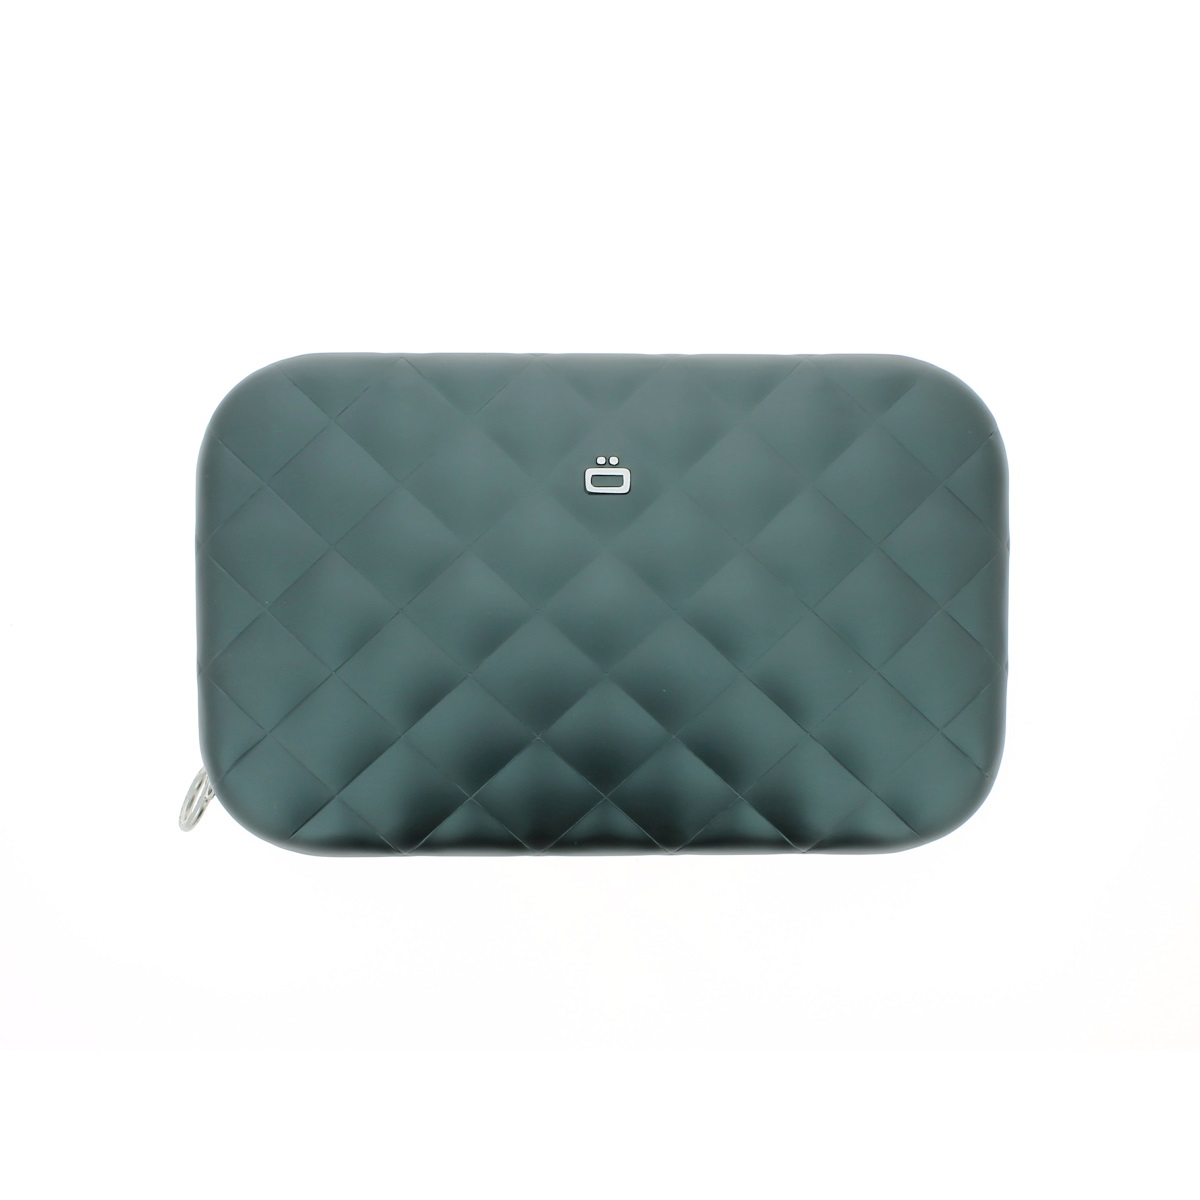 OGON Aluminum Clutch Quilted Lady Bag - Platinium